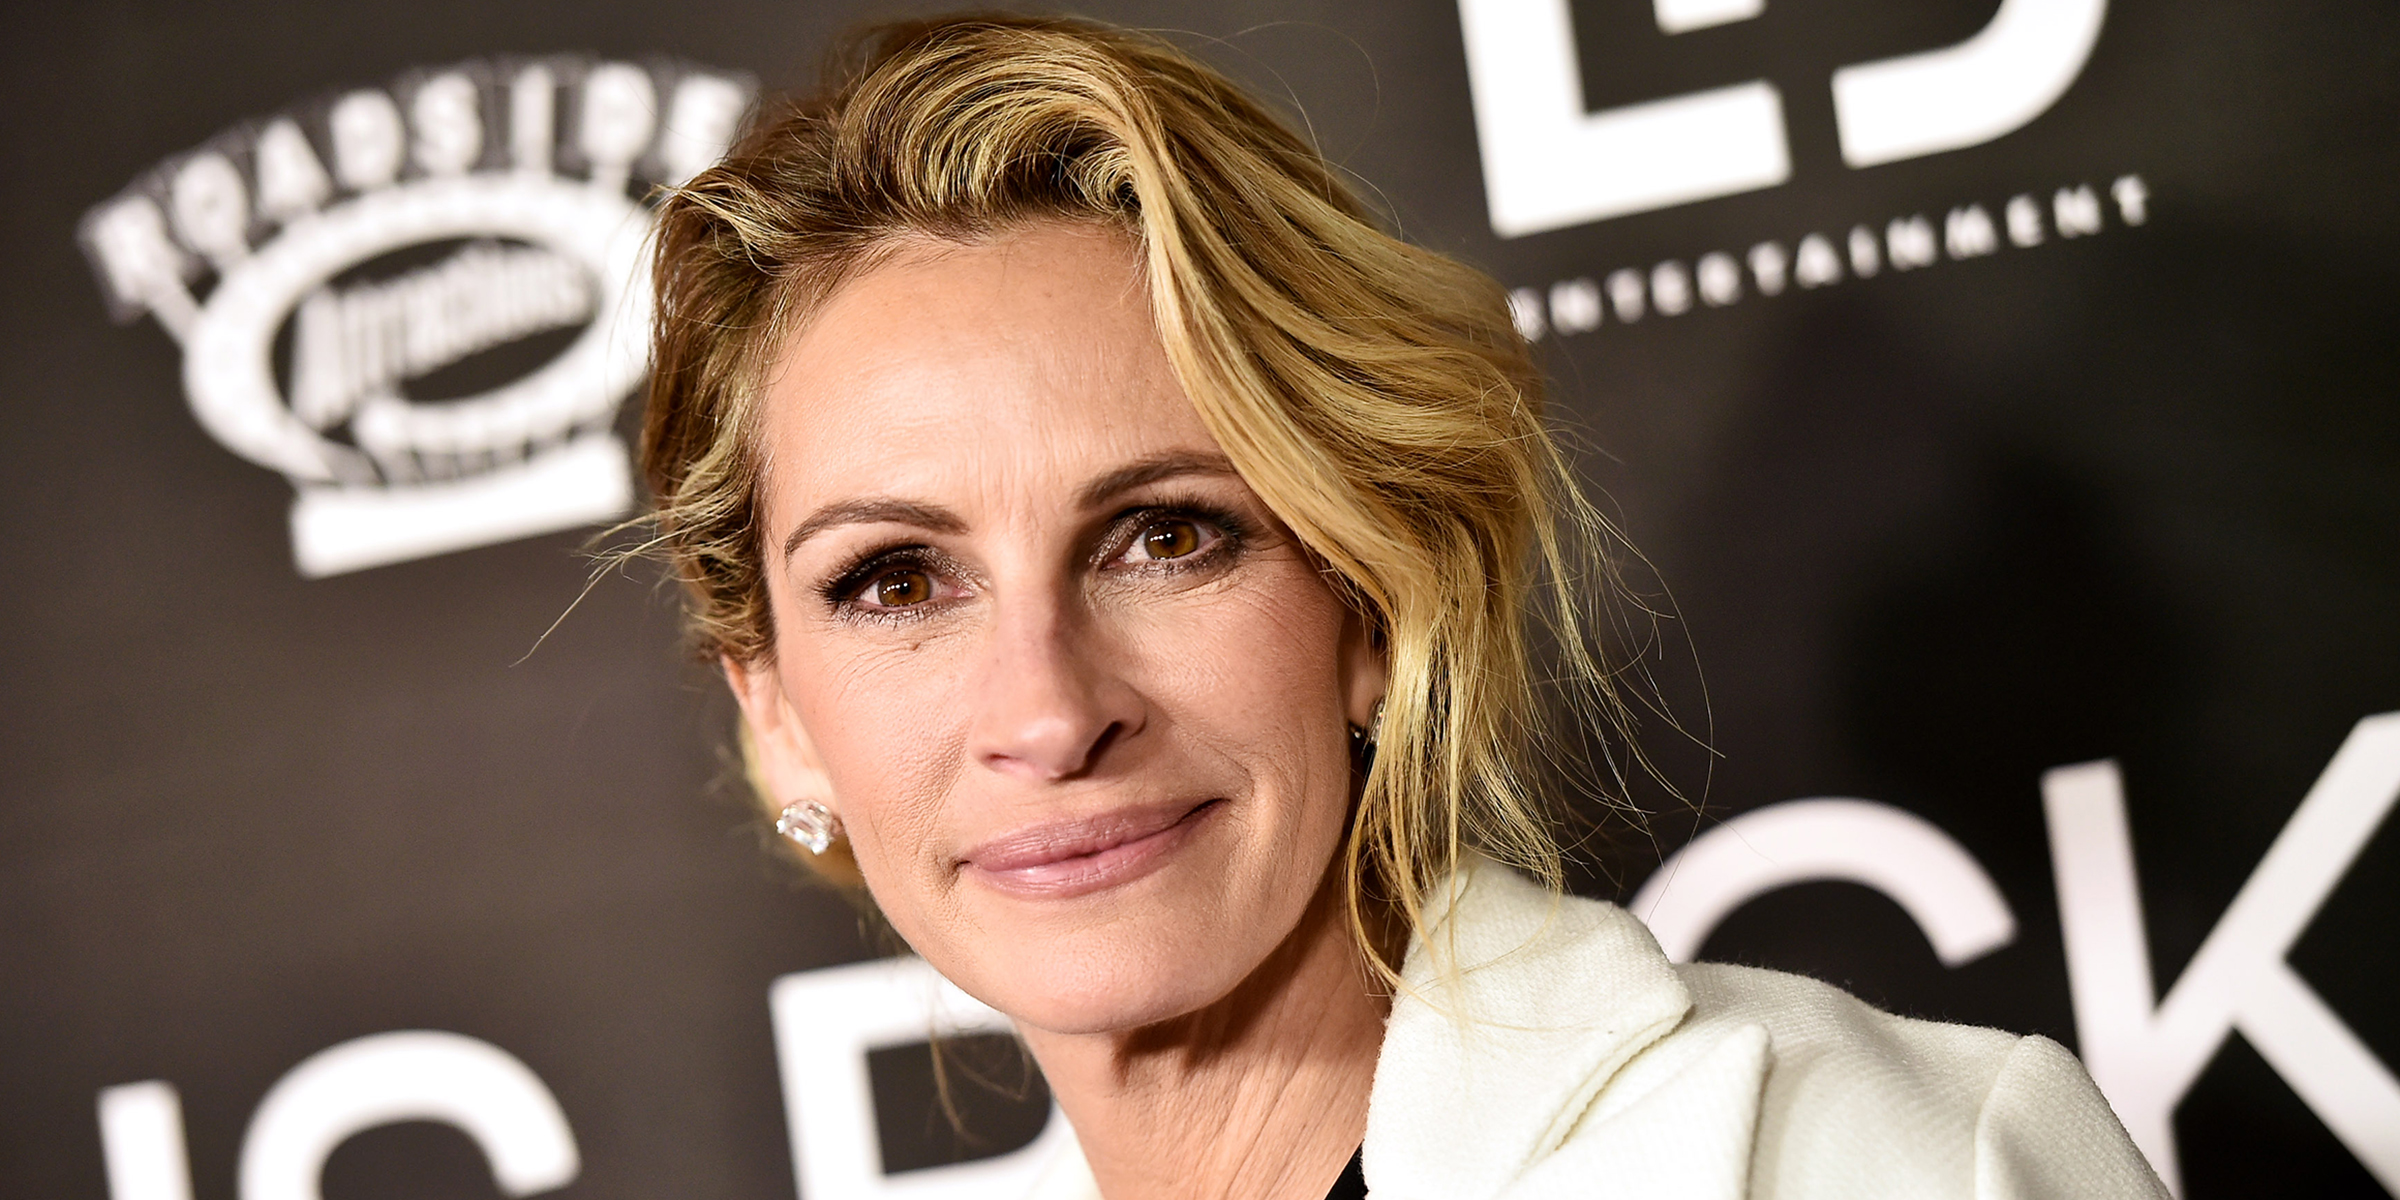 Julia Roberts comments on college cheating scandal and why she finds it so 'sad'